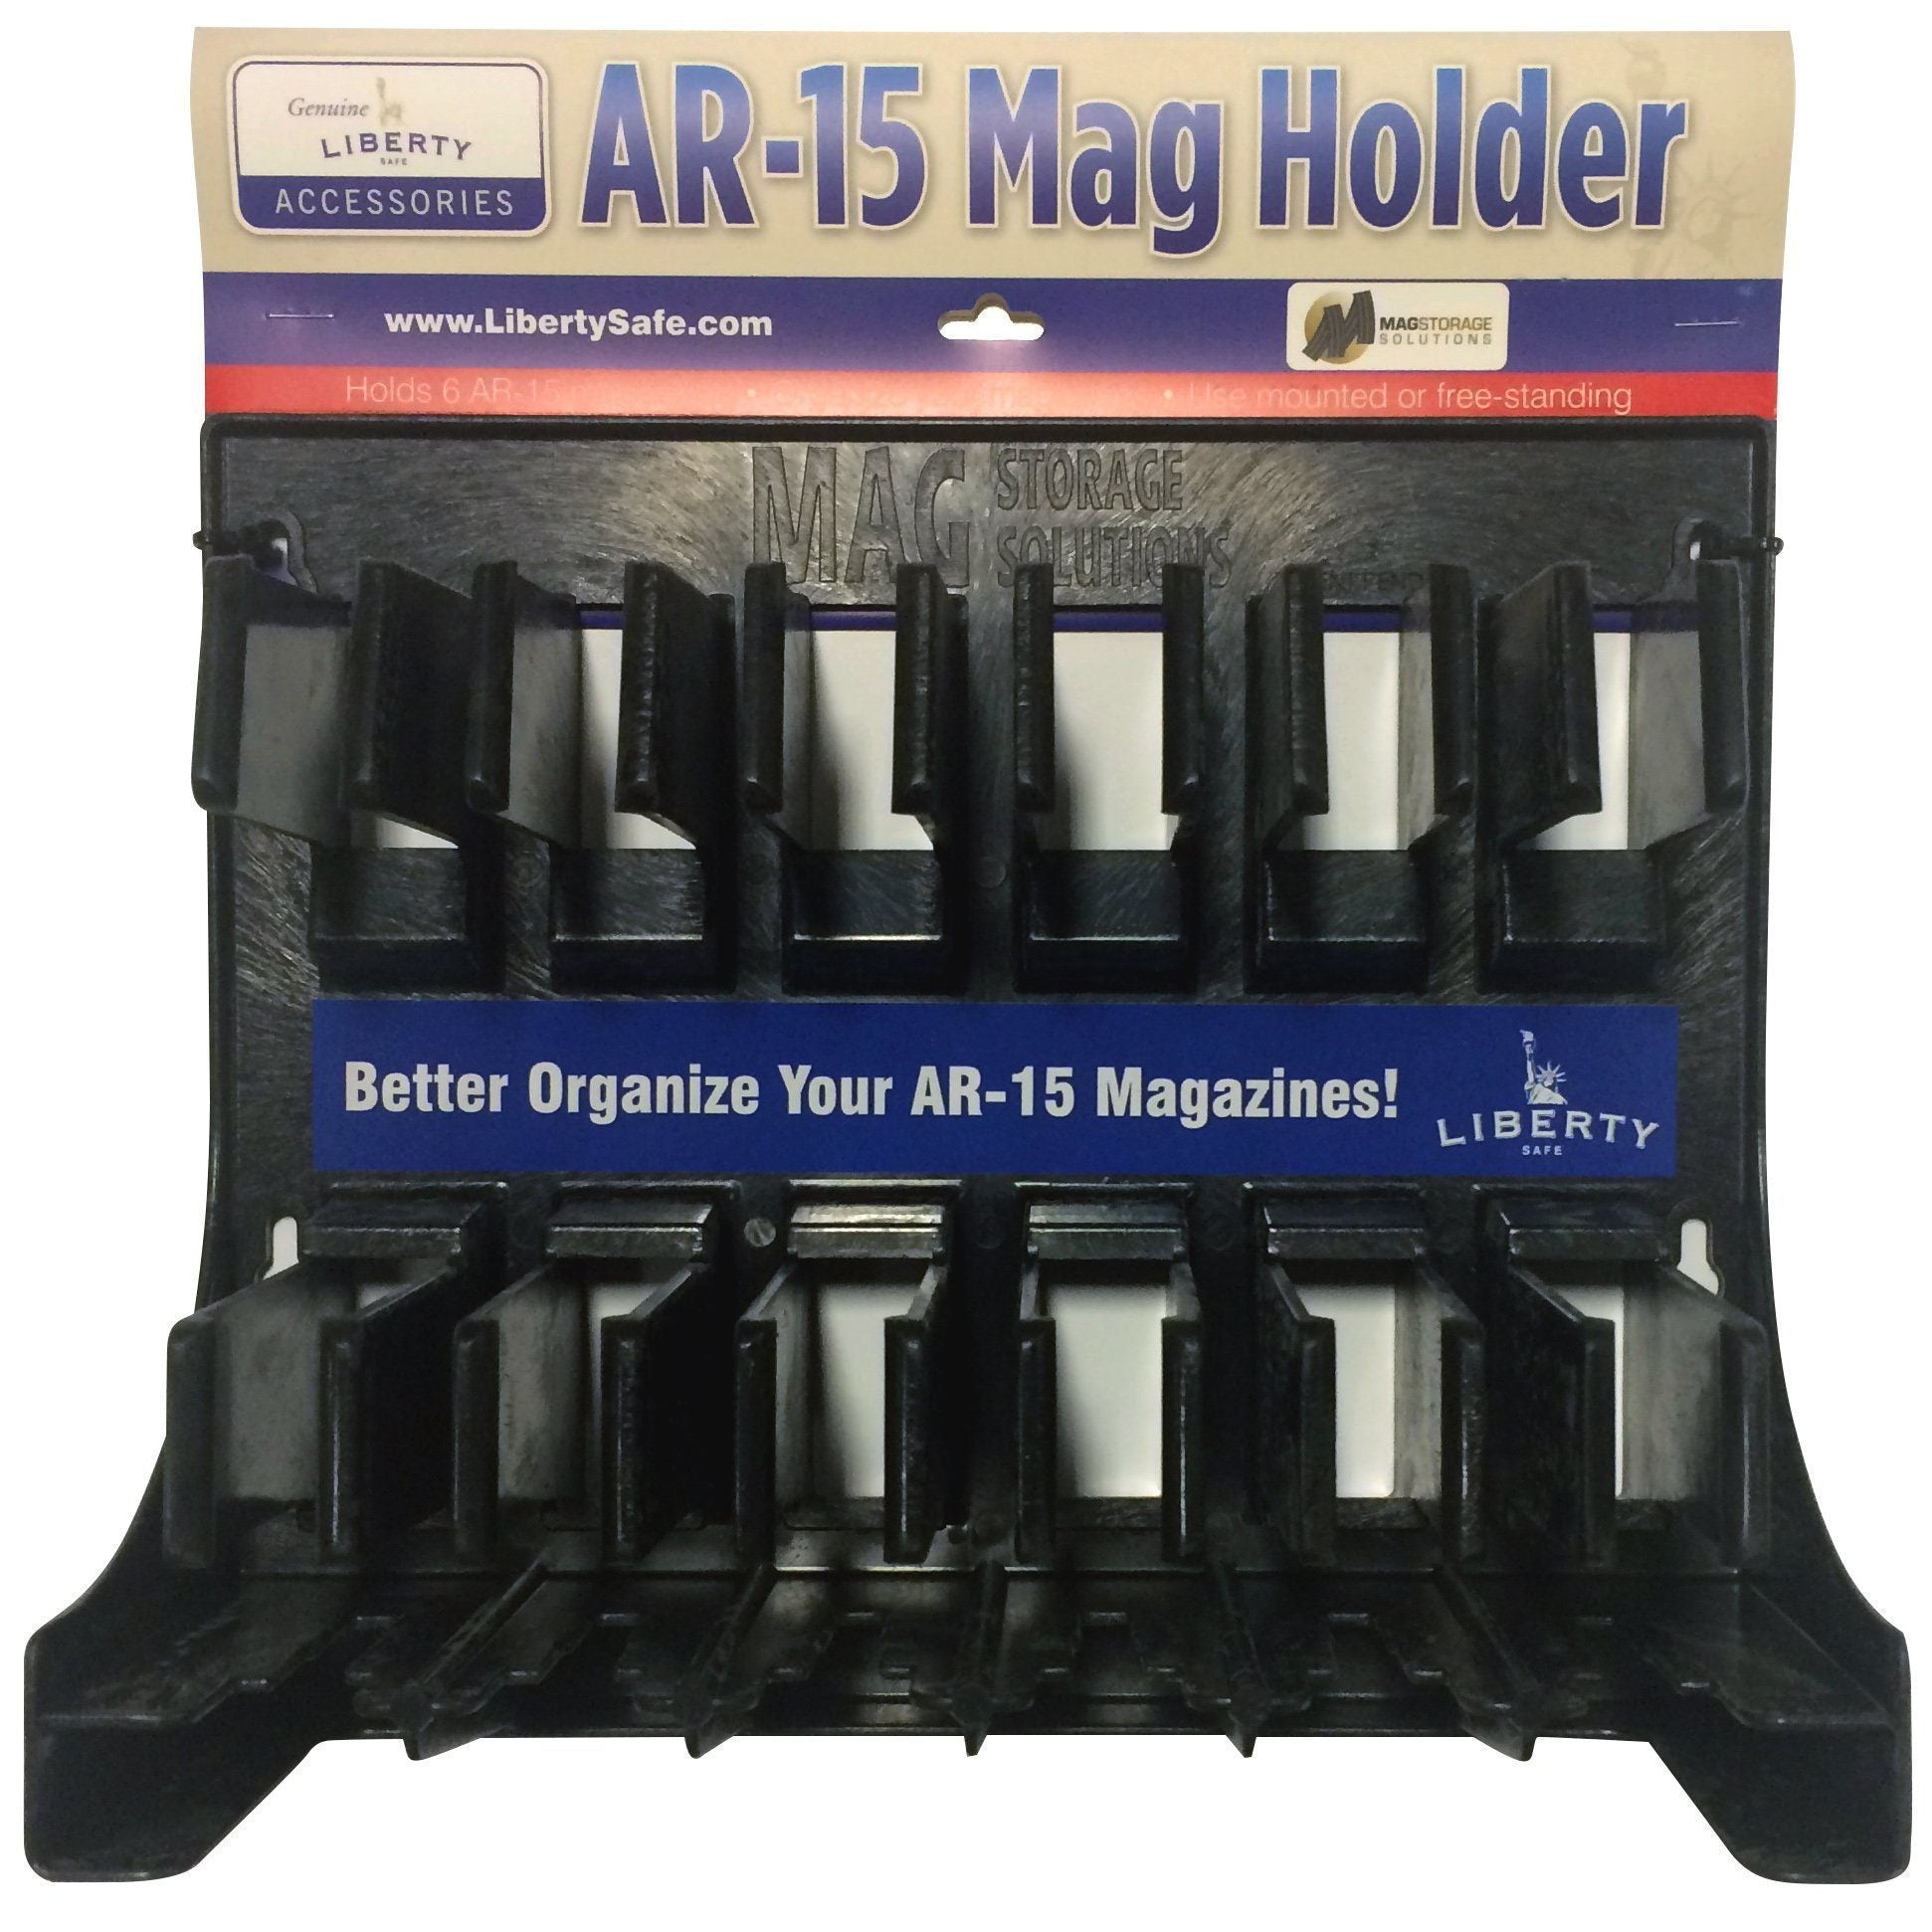 Liberty Safe-accessory-storage-magholder-ar15